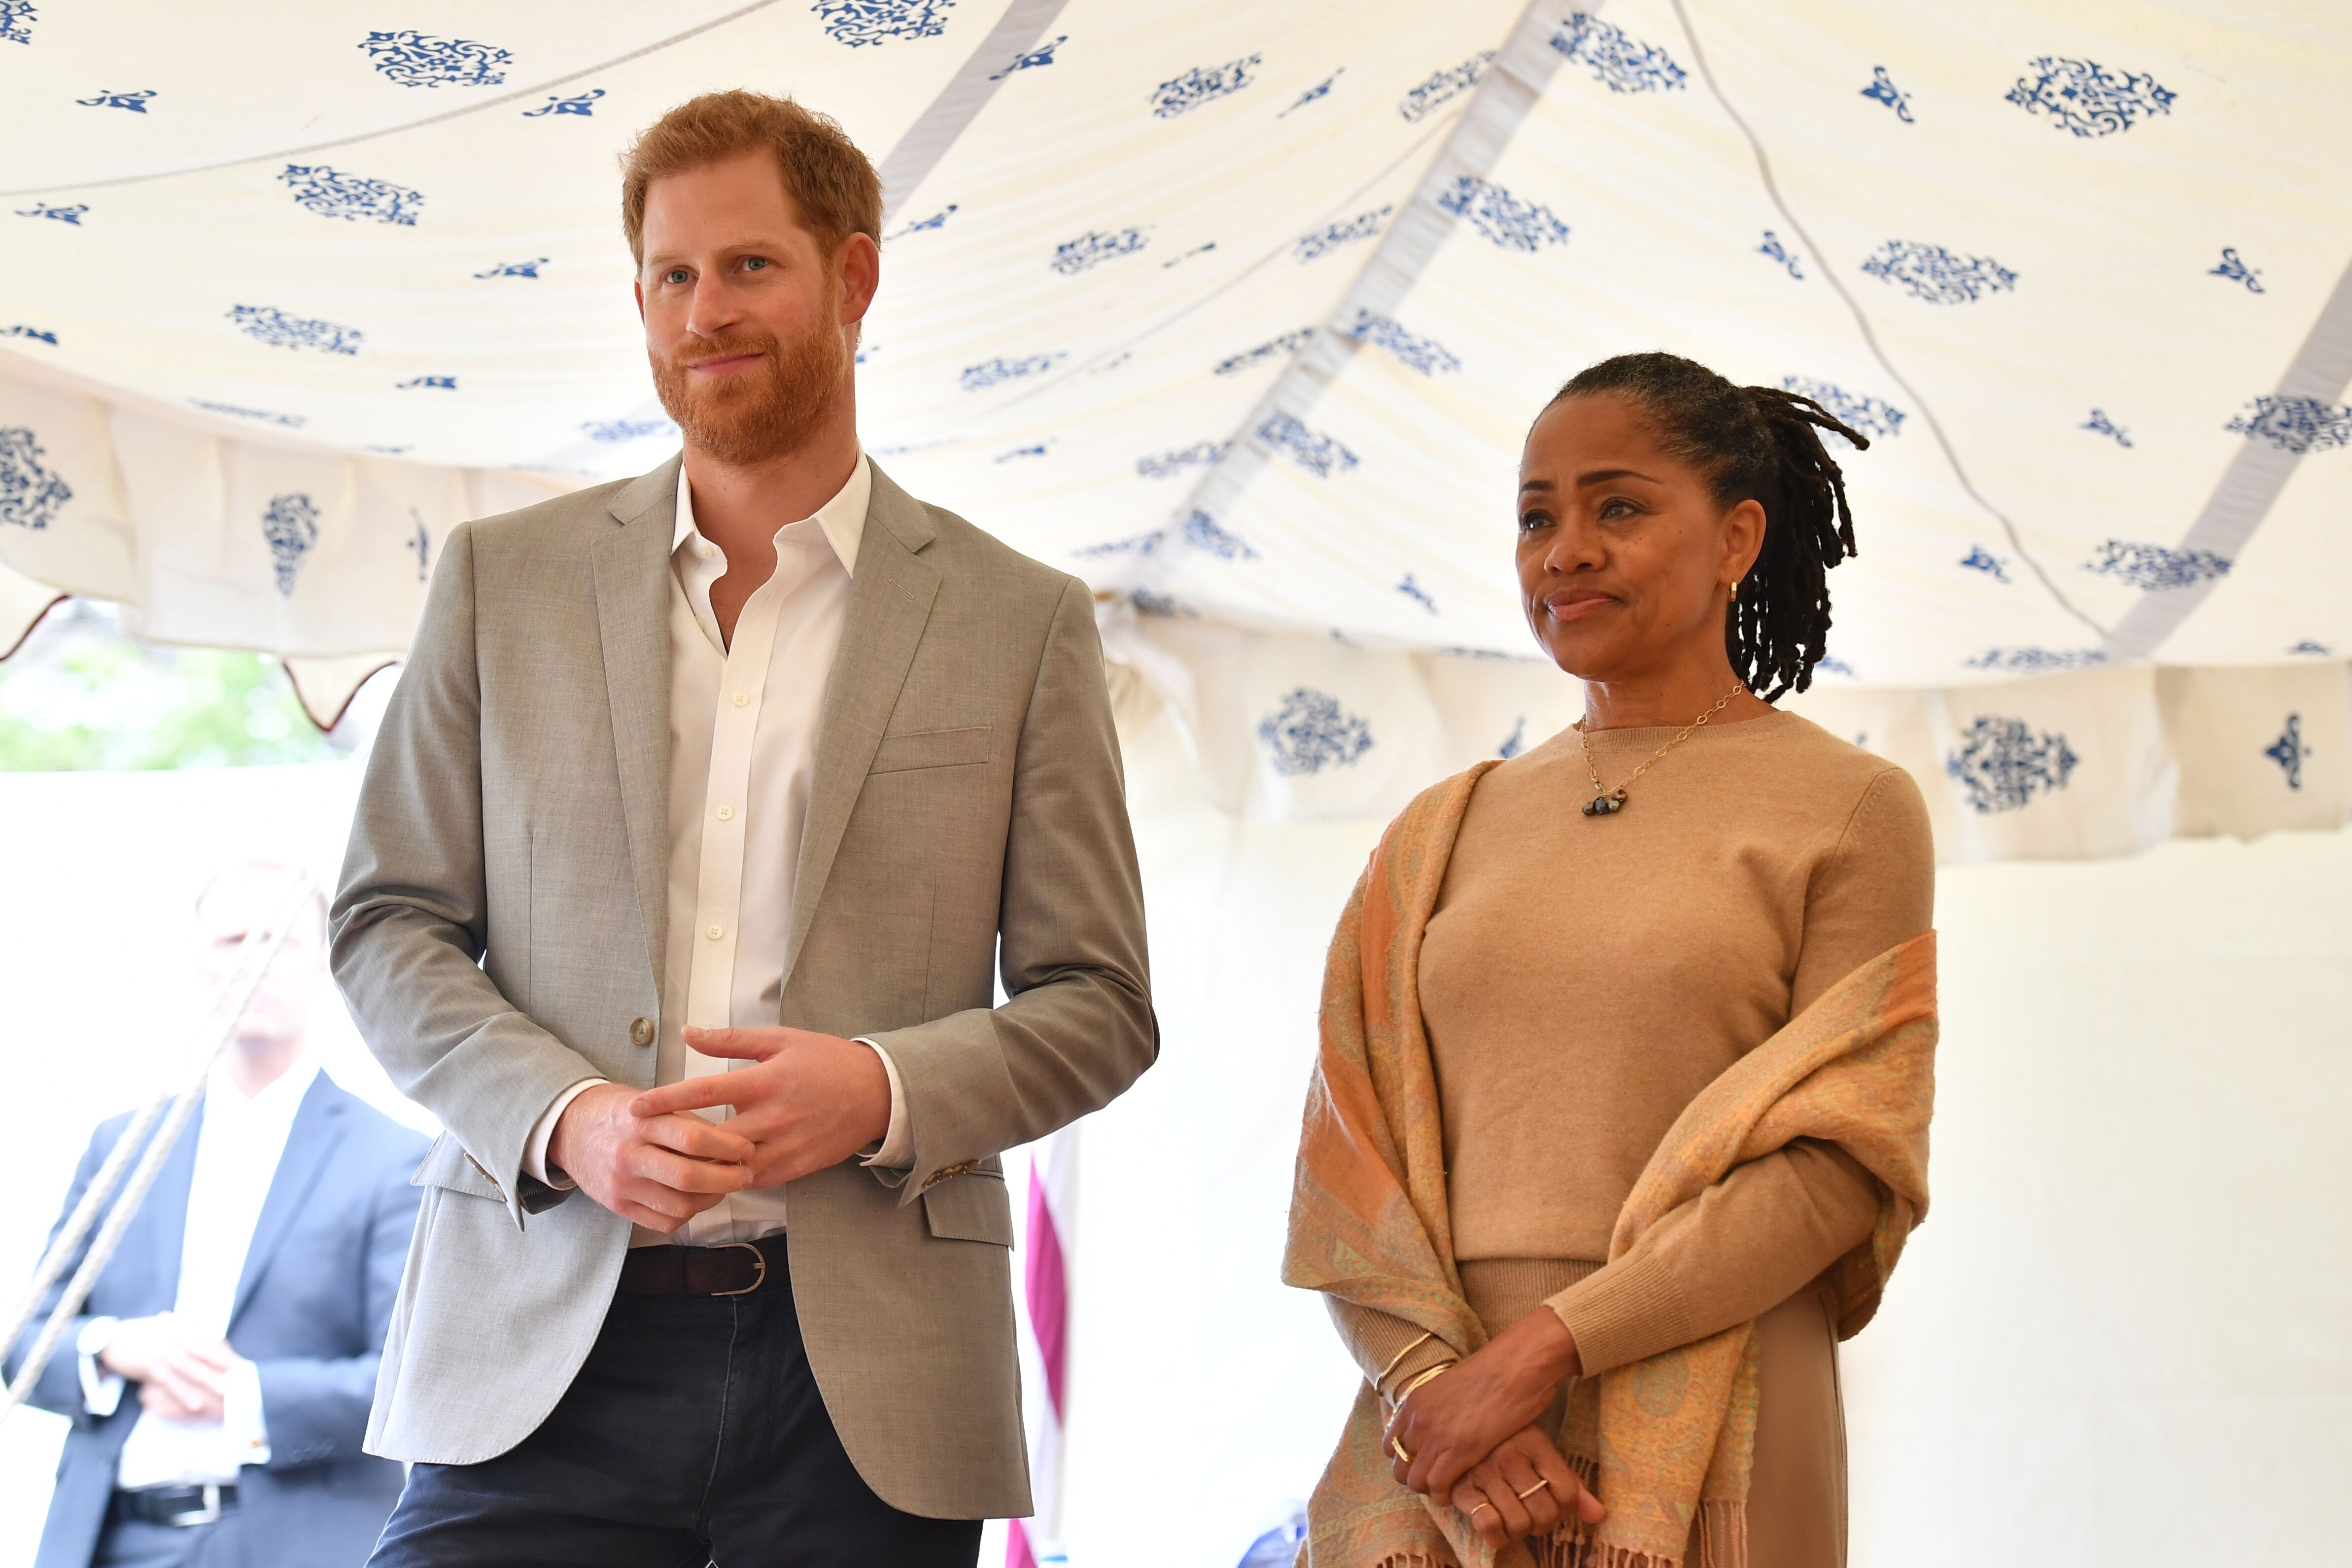 Prince Harry and Doria Ragland listen to Meghan, speaking at an event to mark the launch of a cookbook with recipes from a group of women affected by the Grenfell Tower fire at Kensington Palace on September 20, 2018 in London, England | Photo: Getty Images